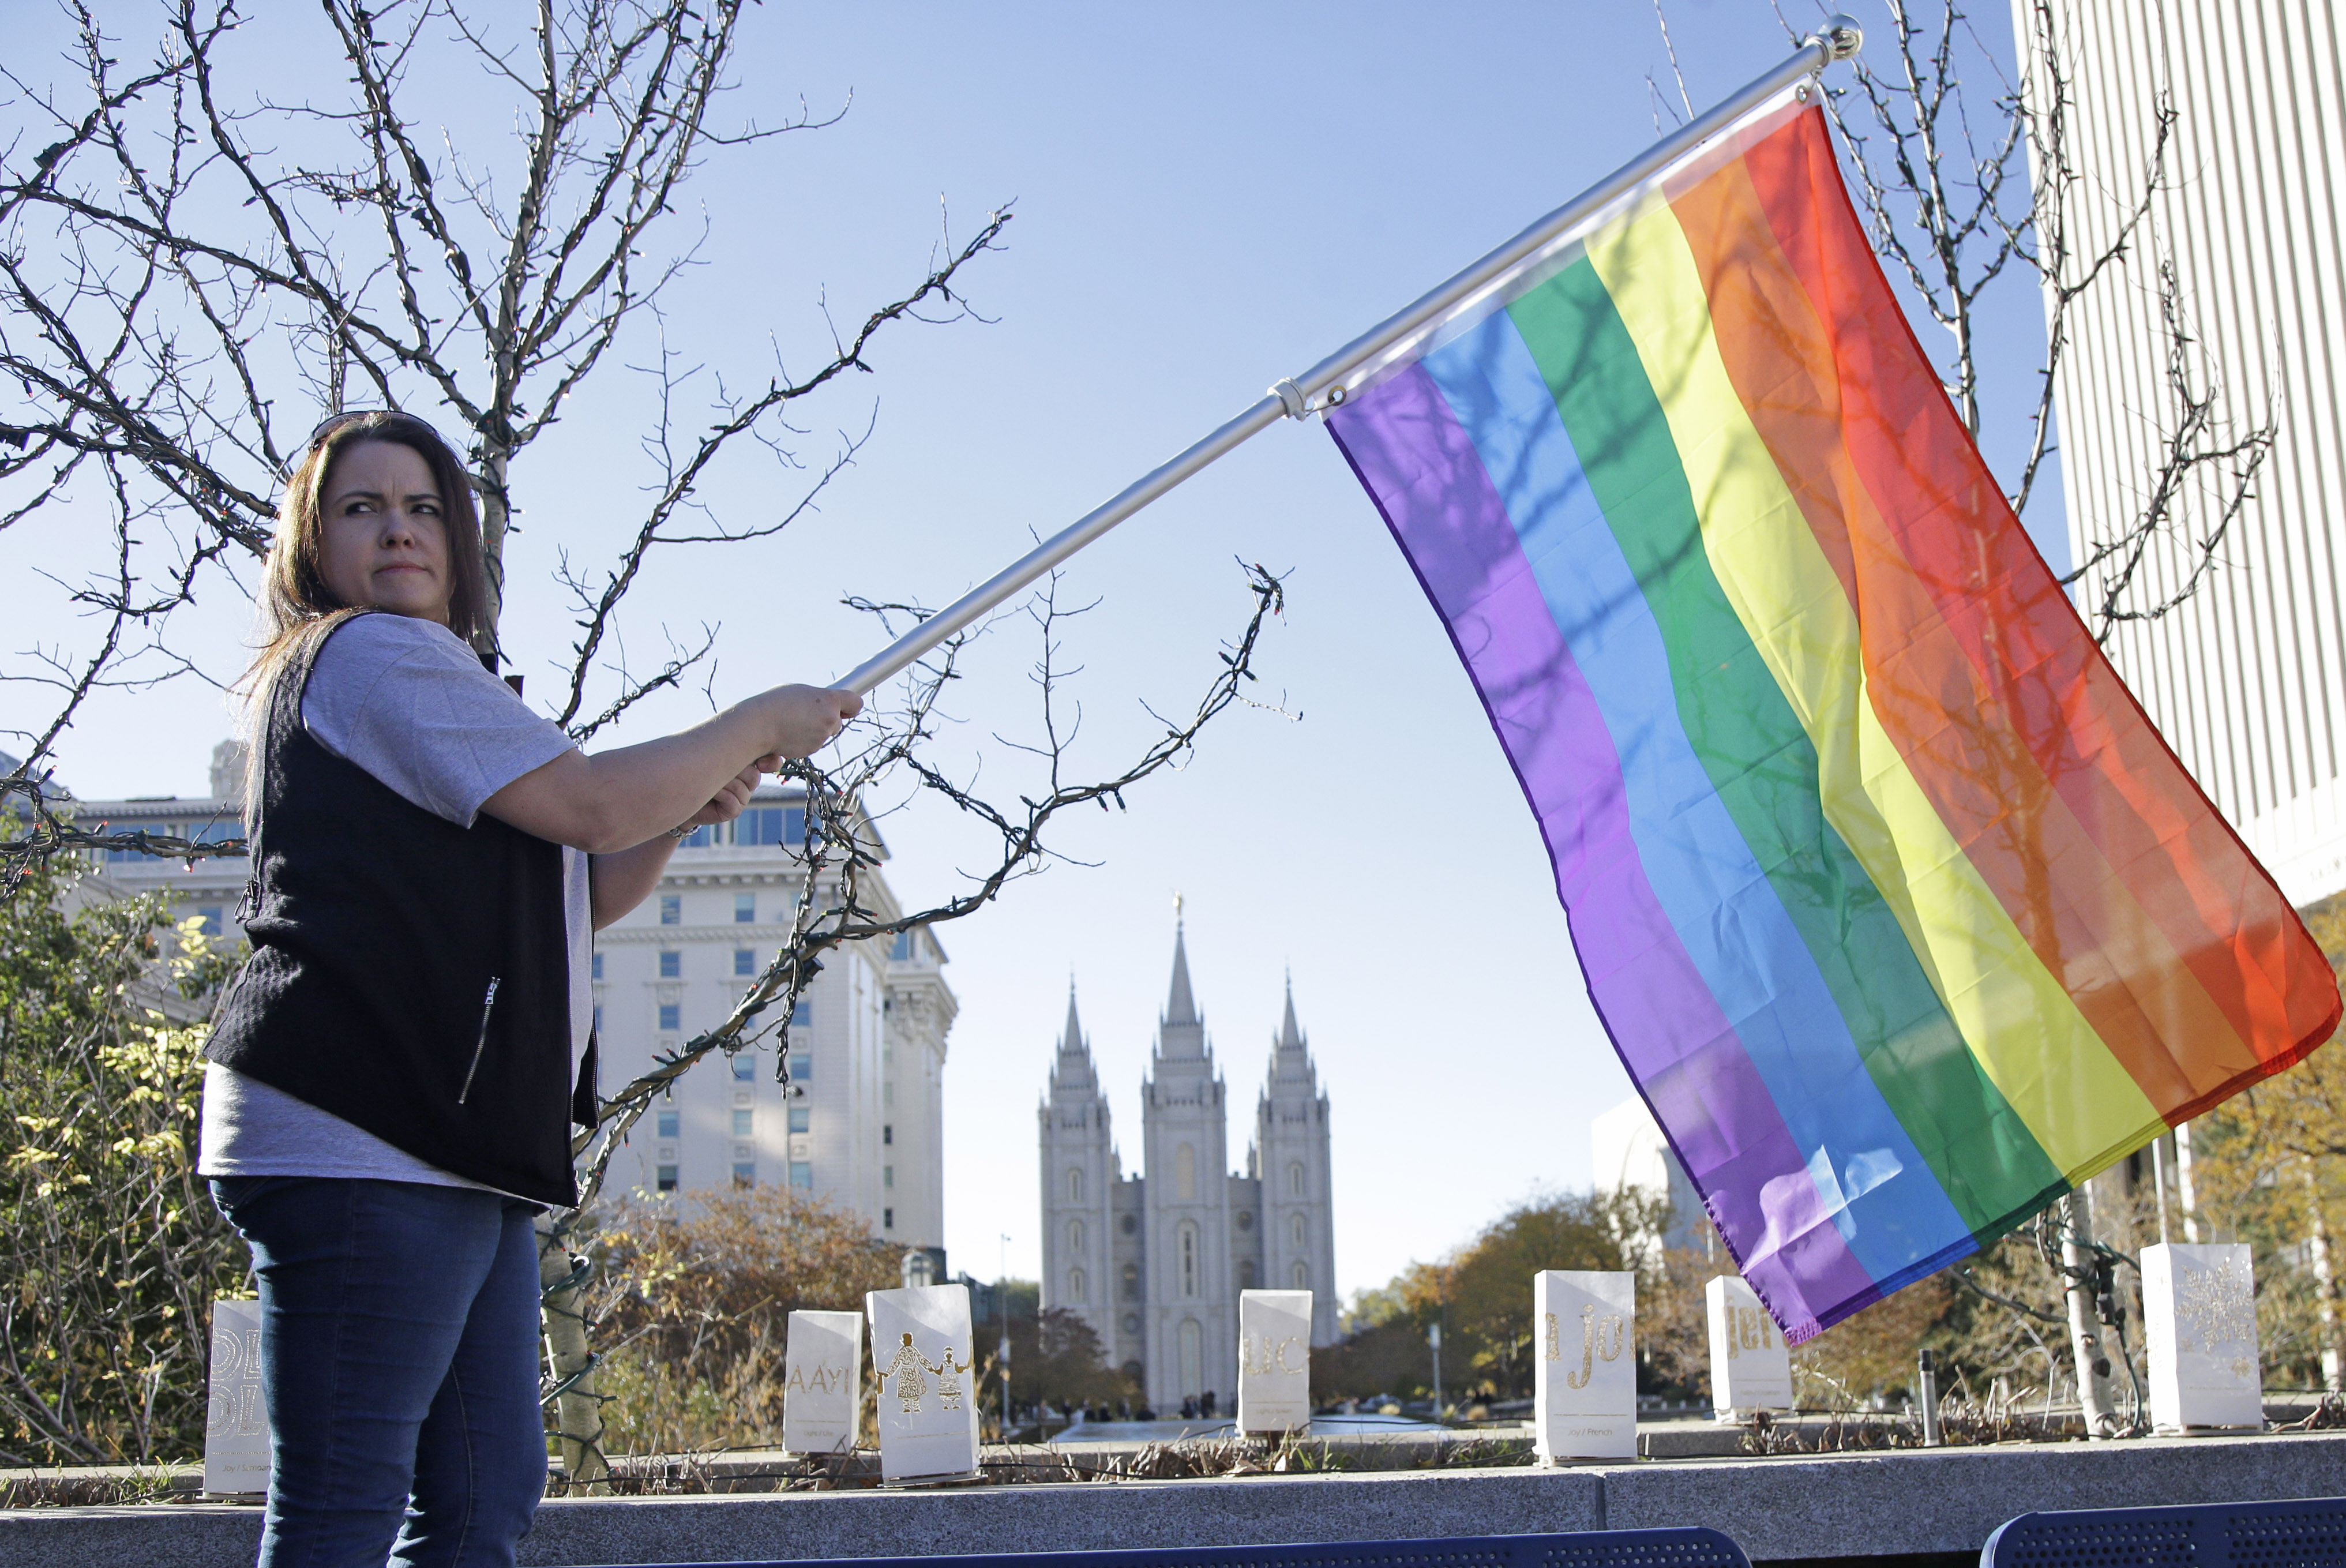 protest of mormon lgbt policy draws hundreds the blade salt